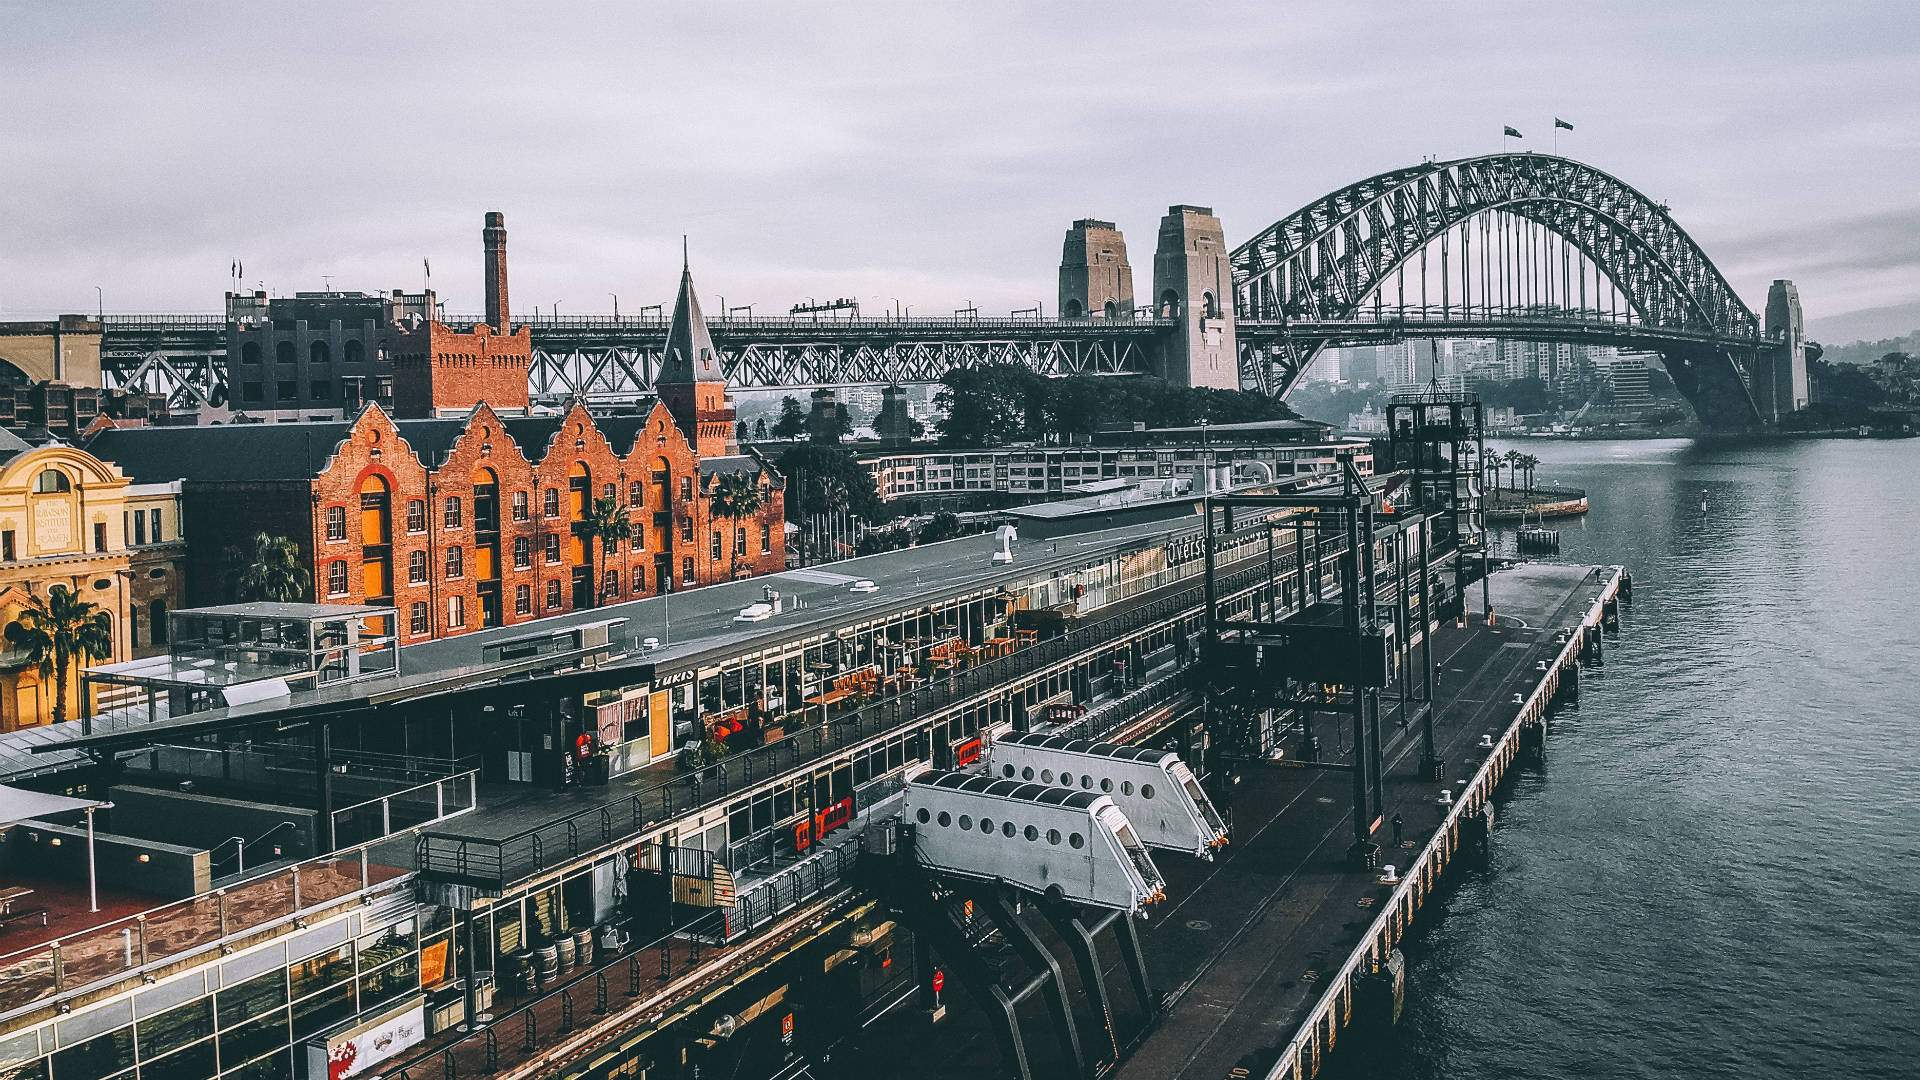 This Cost of Living Report Says Sydney Is No Longer One of the World's Ten Most Expensive Cities